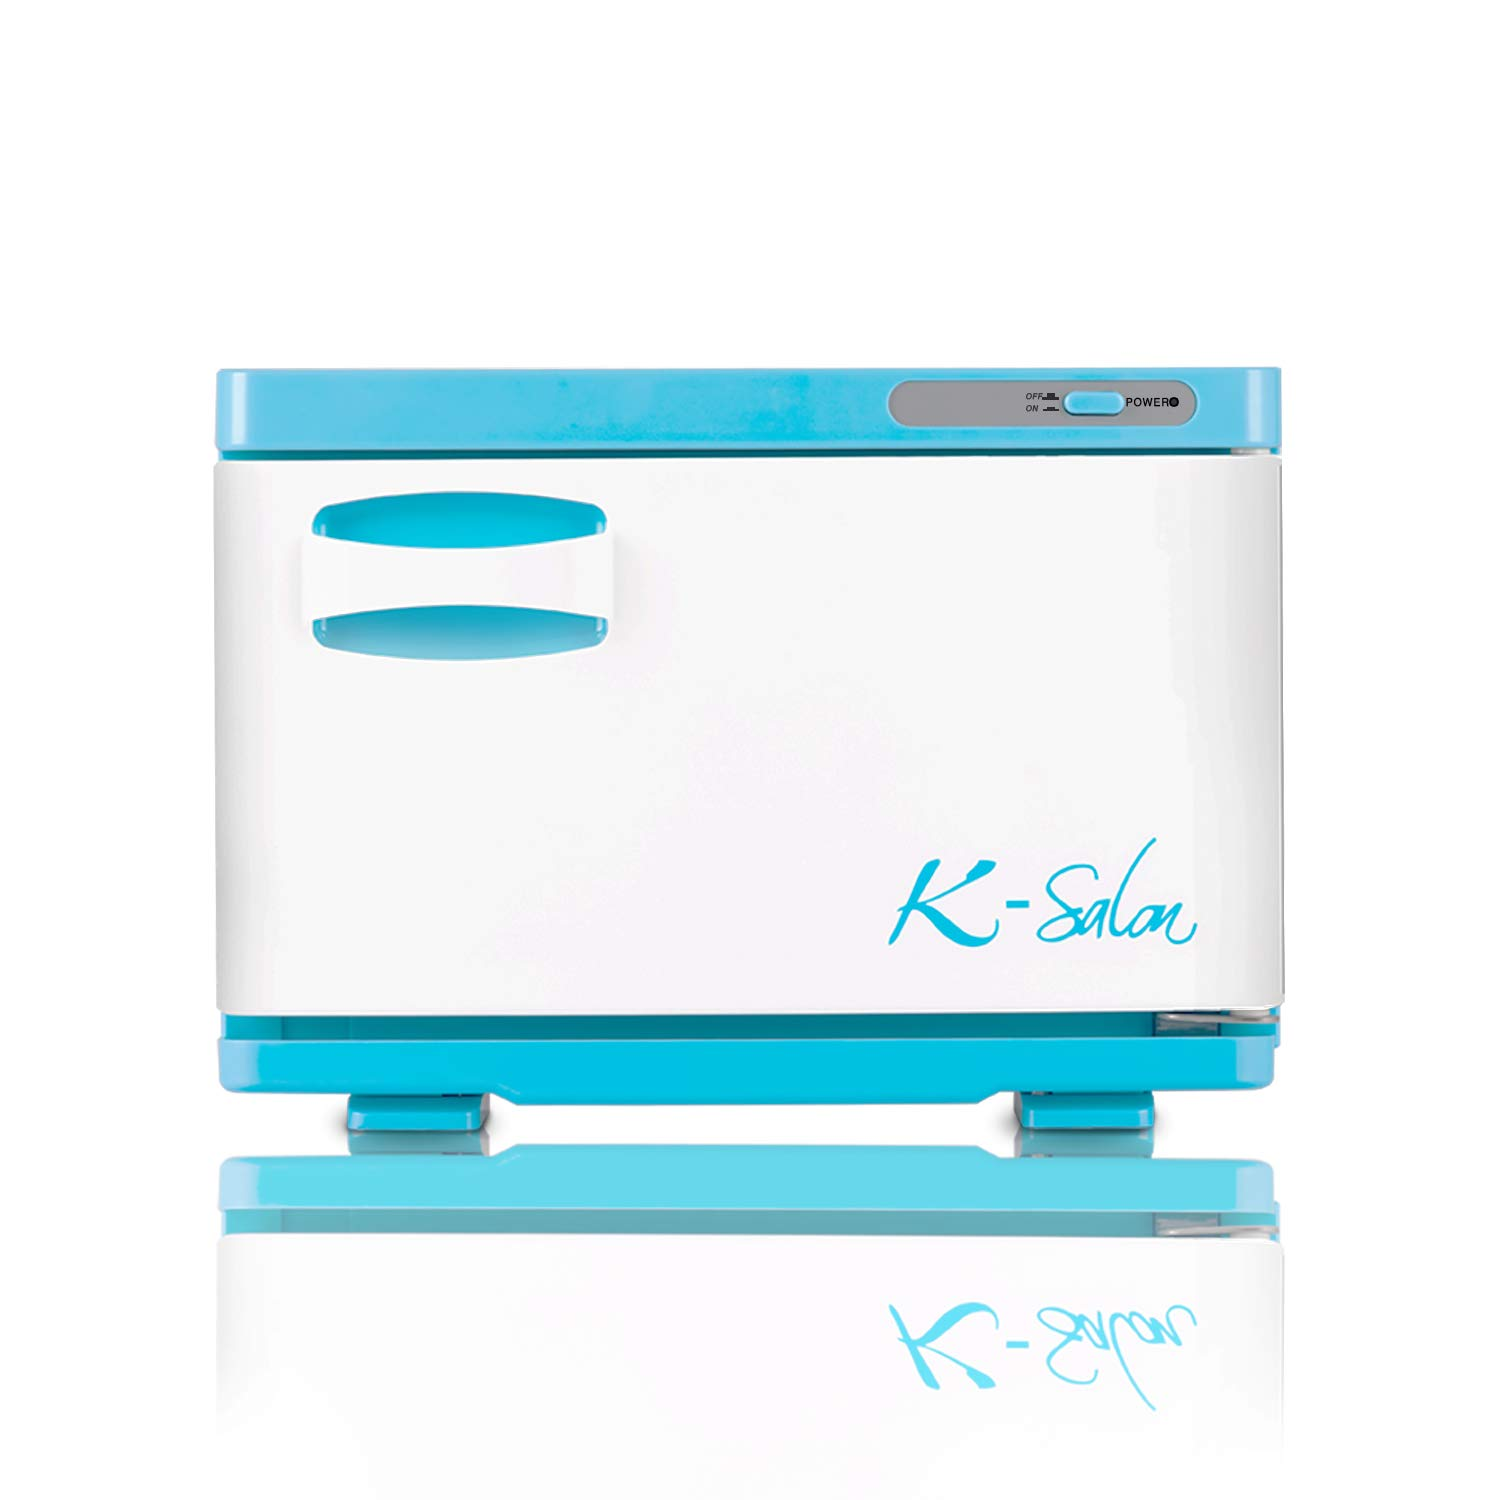 Hot Towel Warmer Towel Cabinet for Spa, Facials, Barber, Salon Equipment and Home Use, Mini by K-Salon